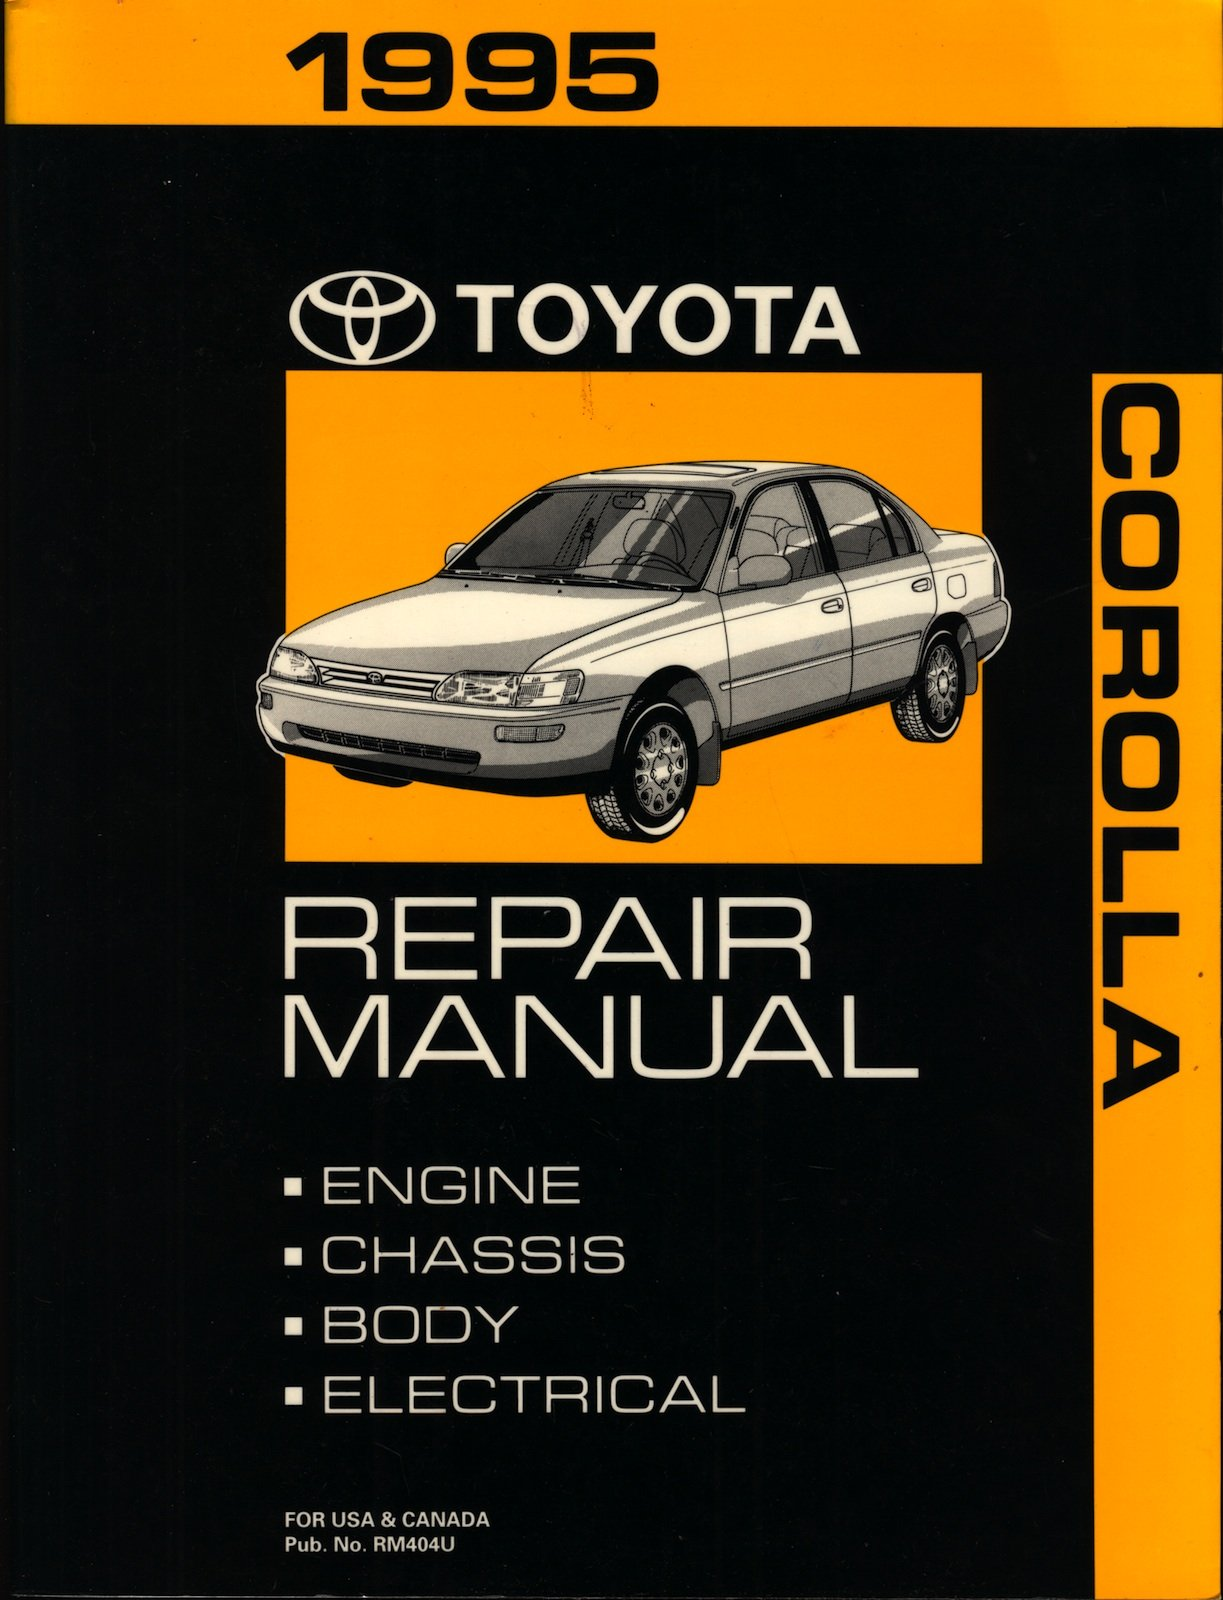 Corolla Starter Wiring Diagram Library 2004 Toyota Echo 1995 Repair Manual Amazon Com Books 2006 1994